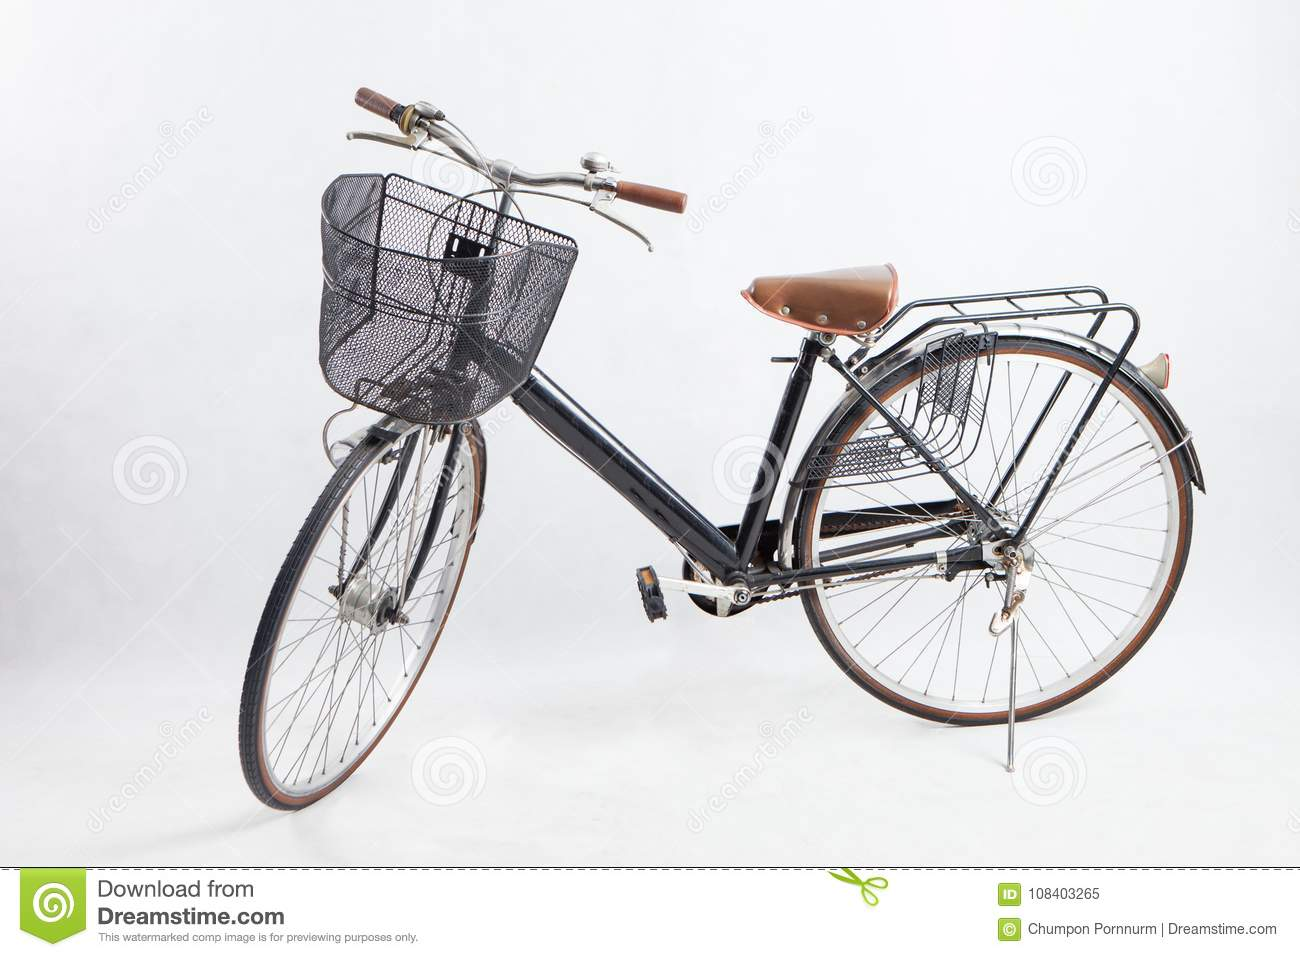 562d122811b Old Black Bike Retro .vintage Bike. Stock Image - Image of ...